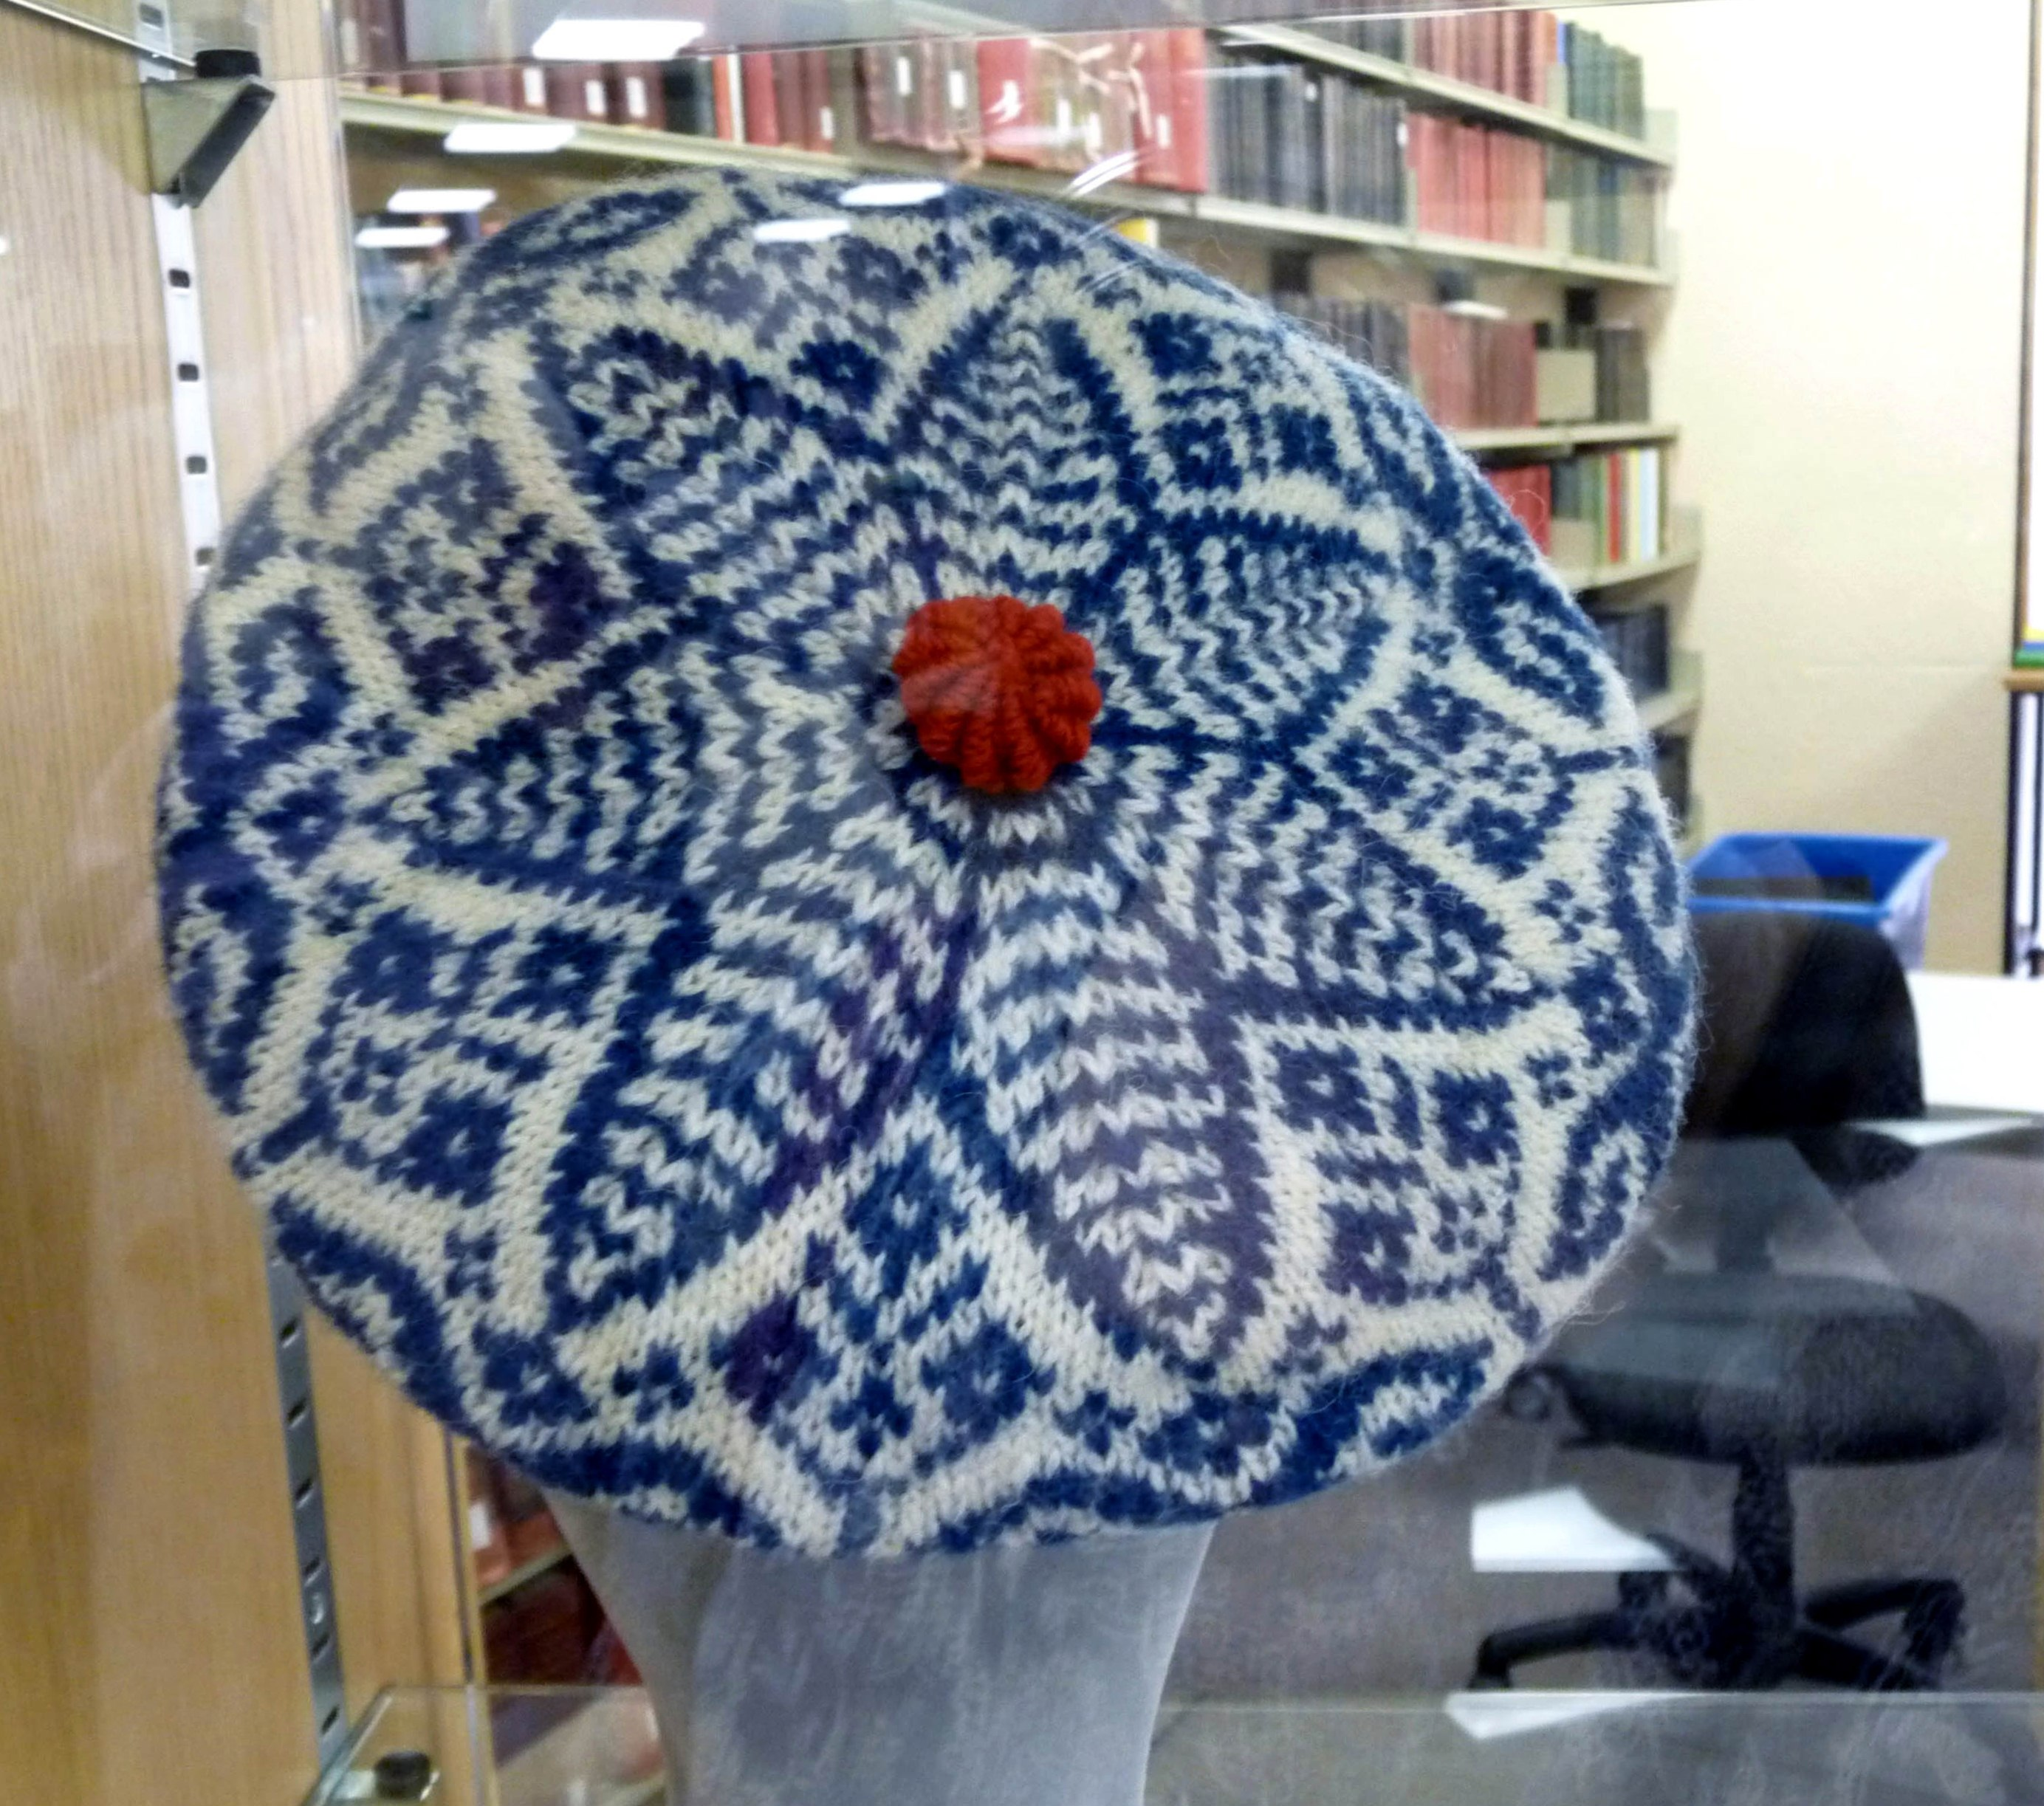 KNITTED HAT by Kate Davies, inspired by a Rachael Kay Shuttleworth coverlet in Gawthorpe Hall